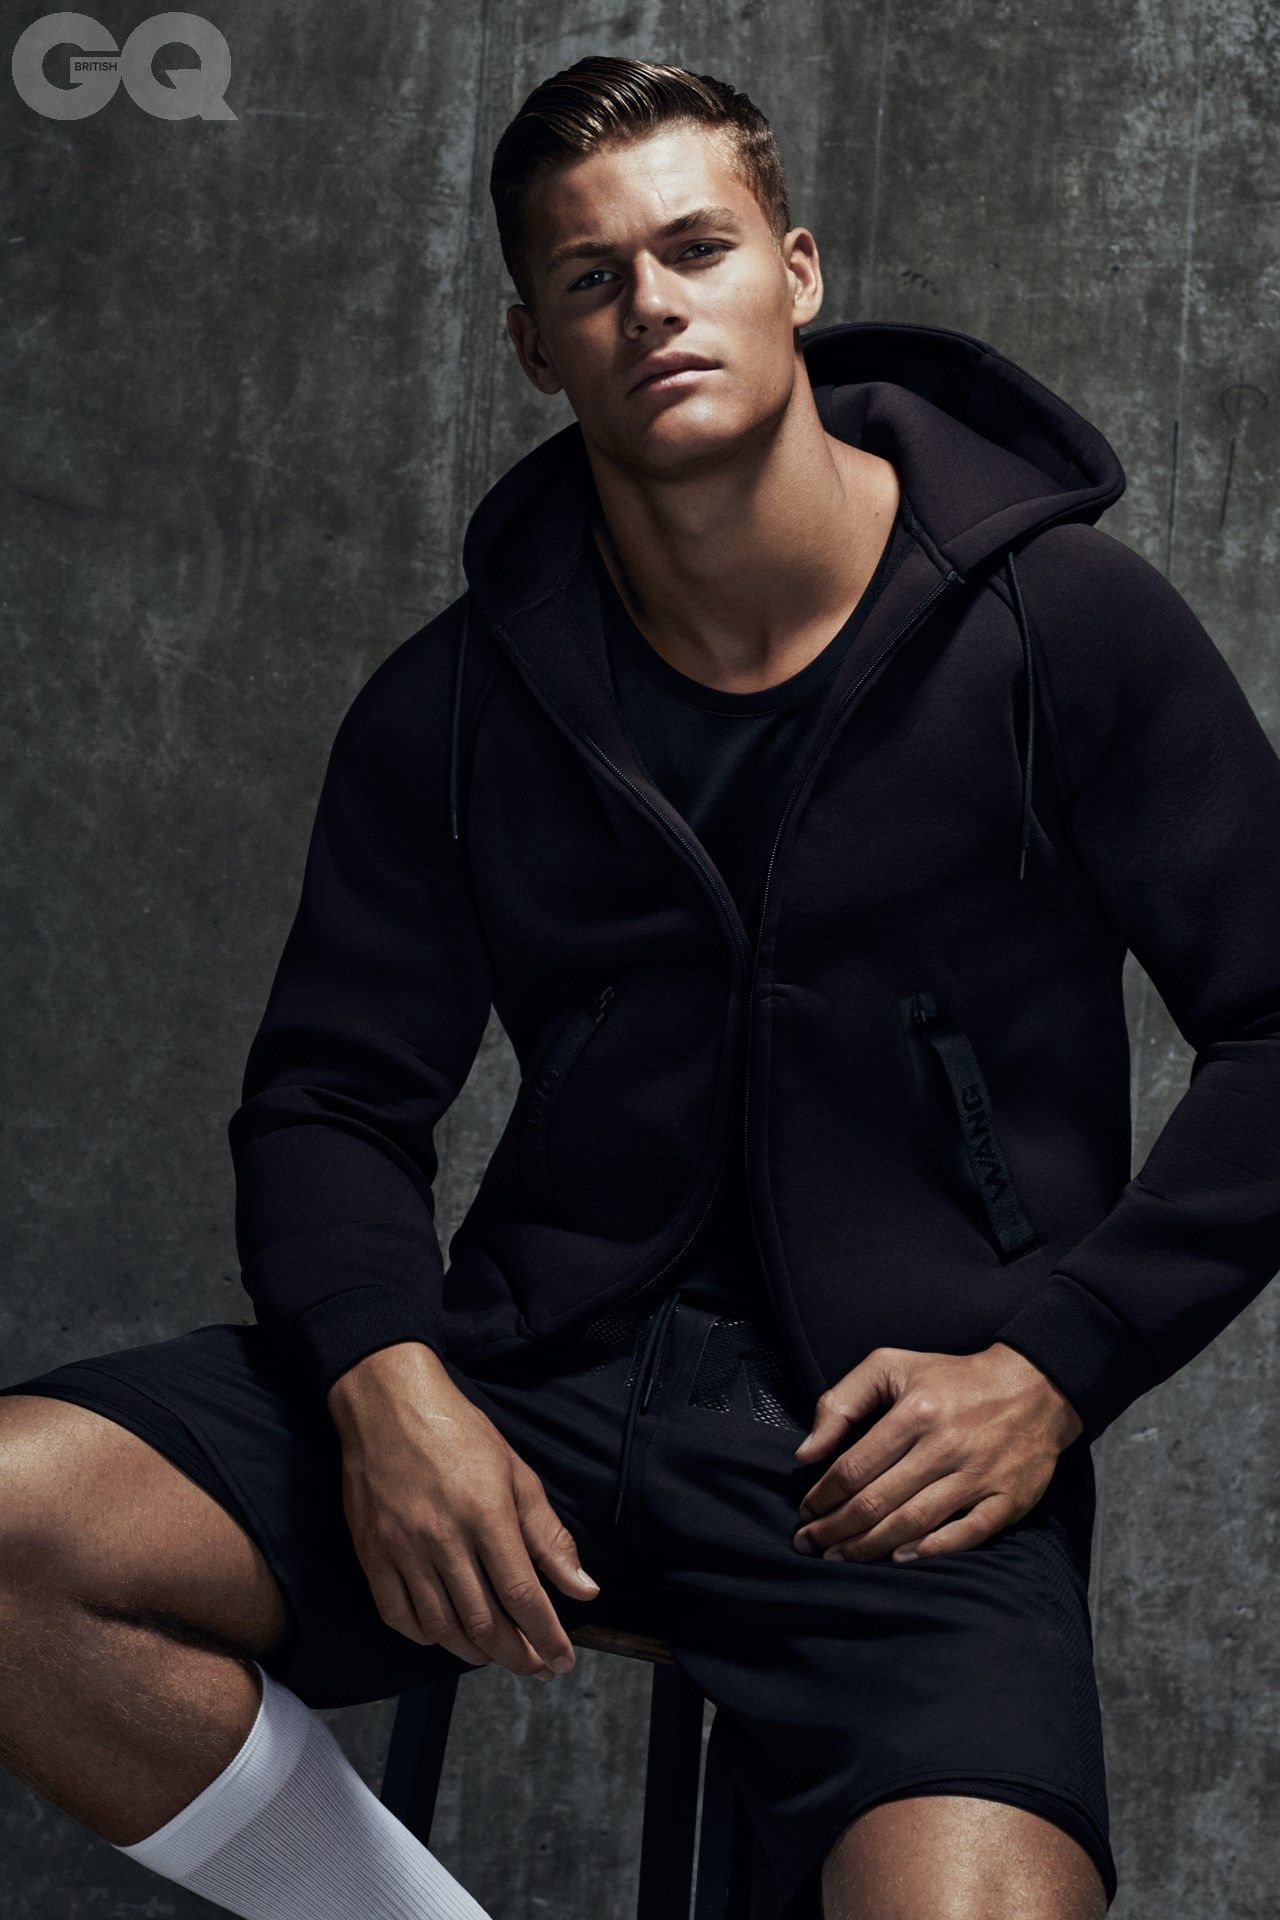 Fitness Lifestyle Wangen Gq Shoots Alexander Wang 39s First H And Menswear Line British Gq